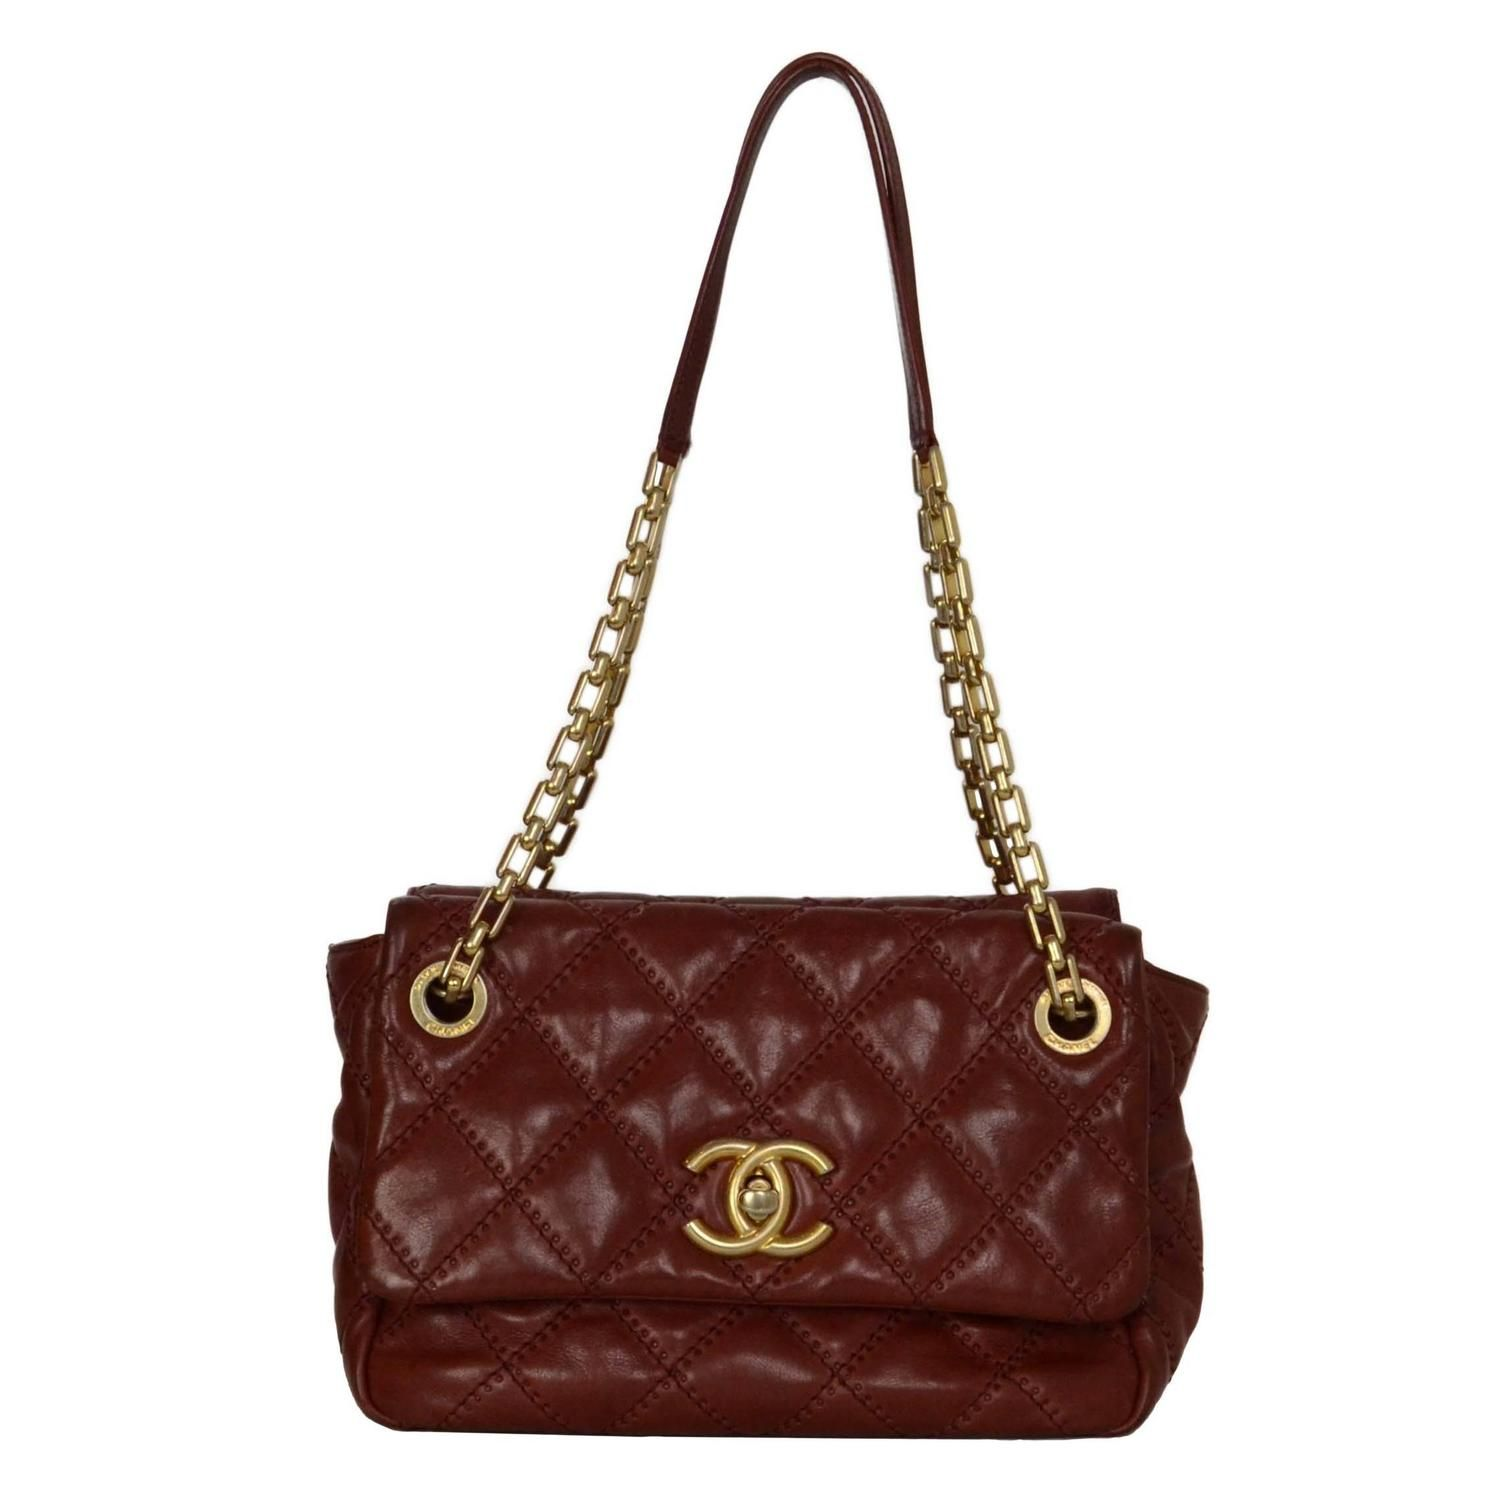 c6400e95e243 Chanel Burgundy Quilted Leather Bag GHW